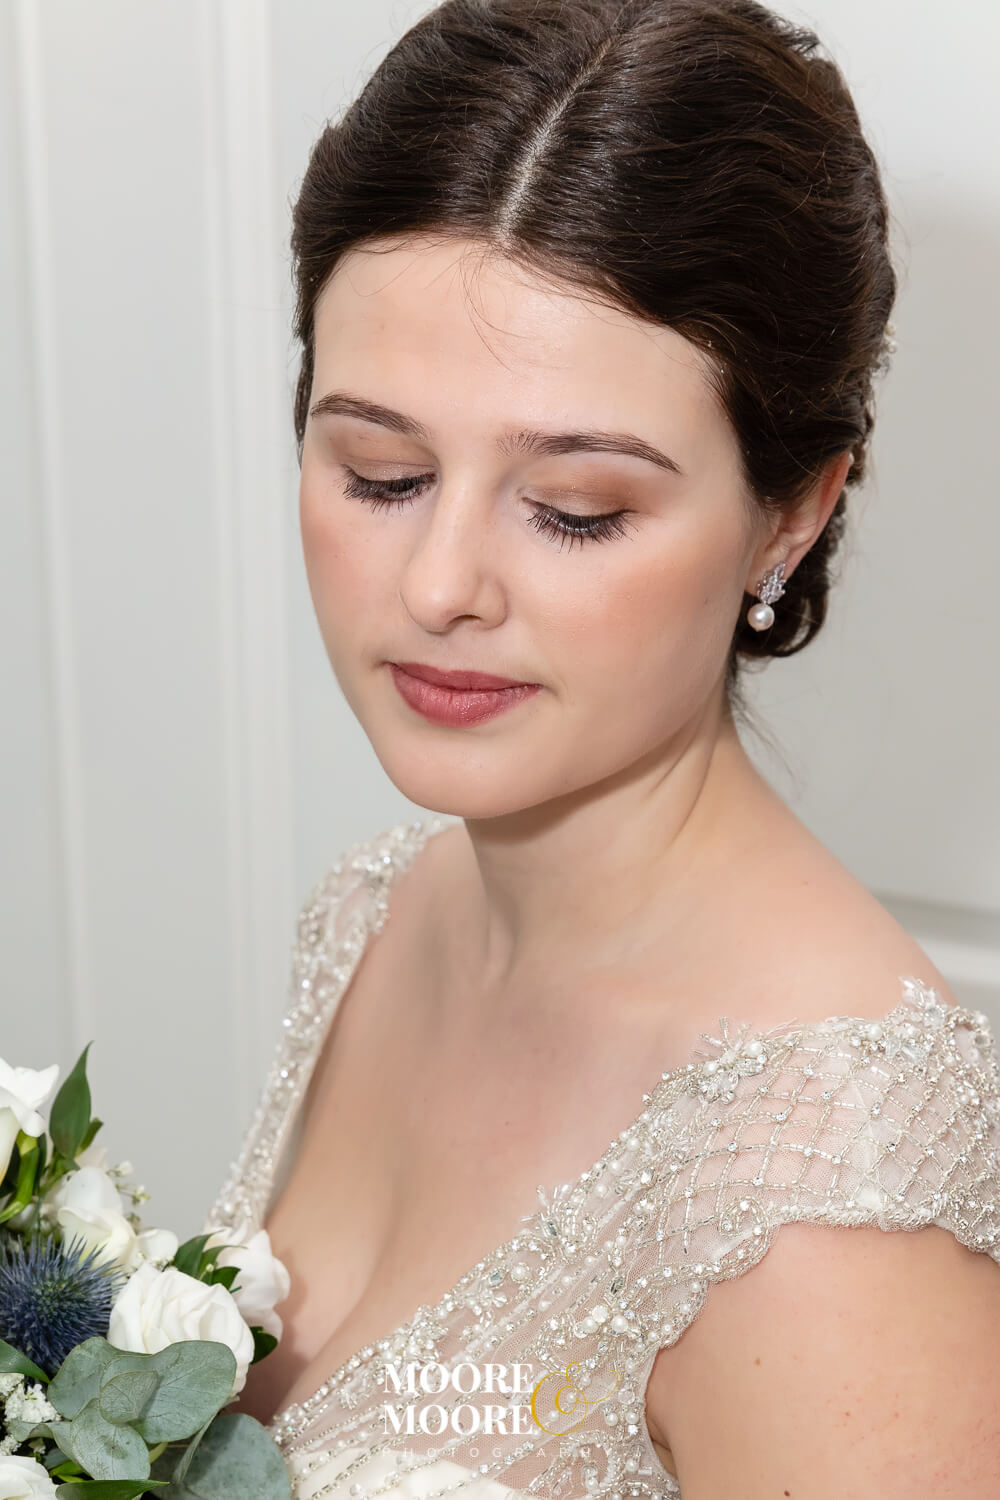 Bridal Photography by Moore & Moore Photography, Fleet, Hampshire